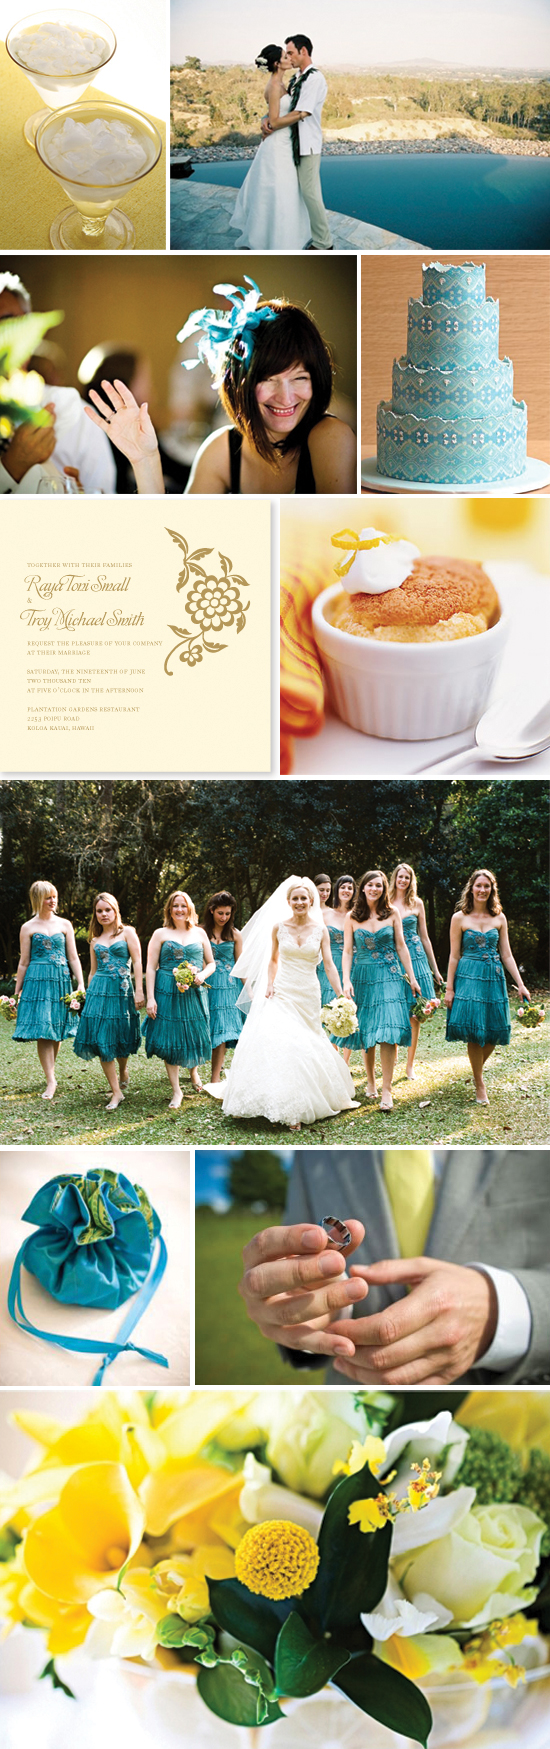 wedding inspiration board - turquoise and yellow